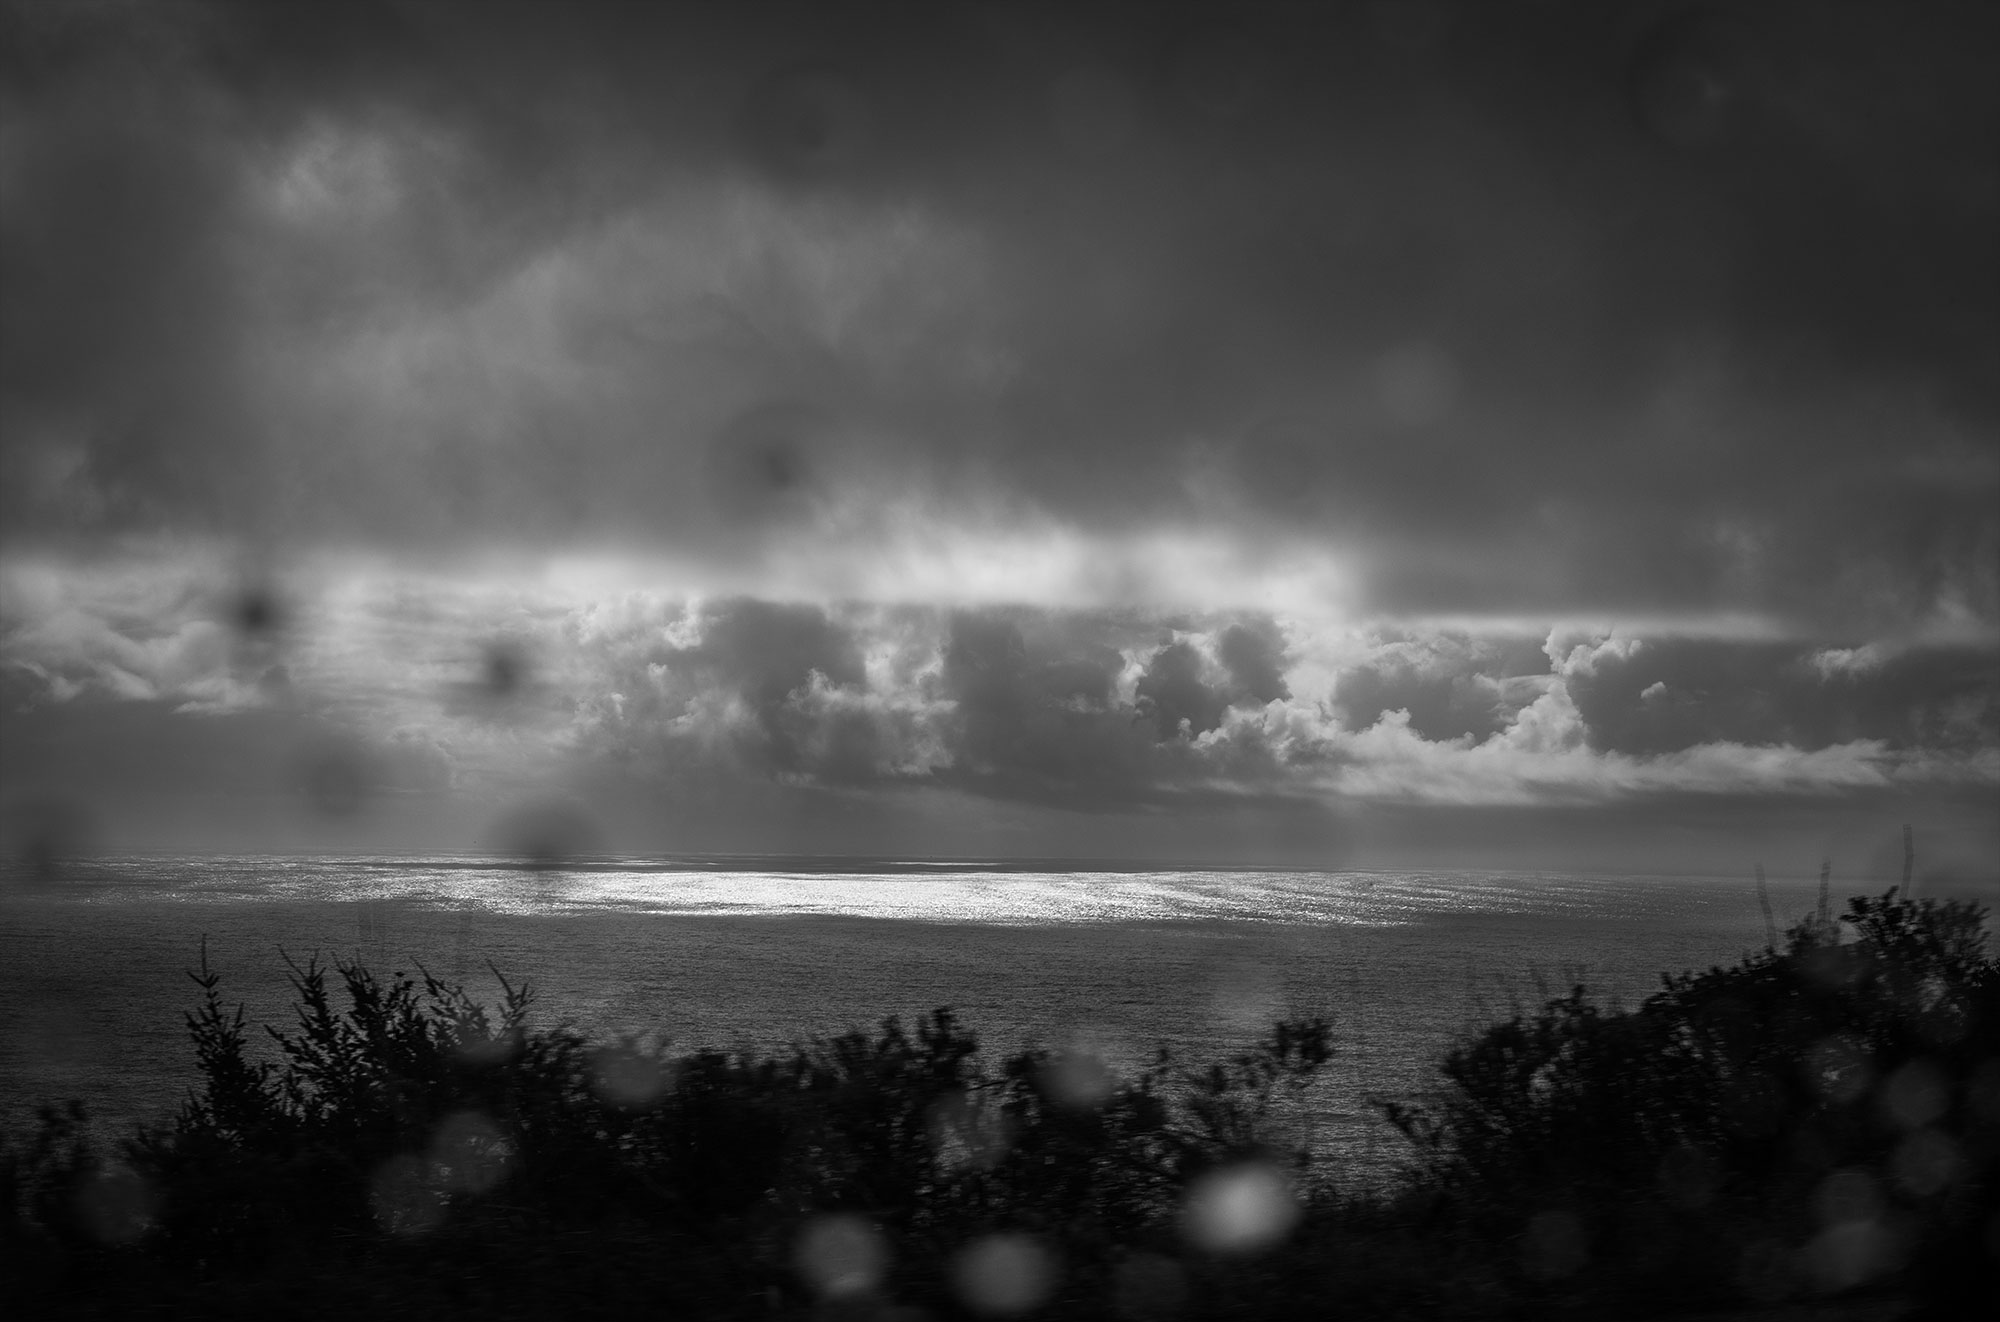 A storm over the Pacific Ocean.